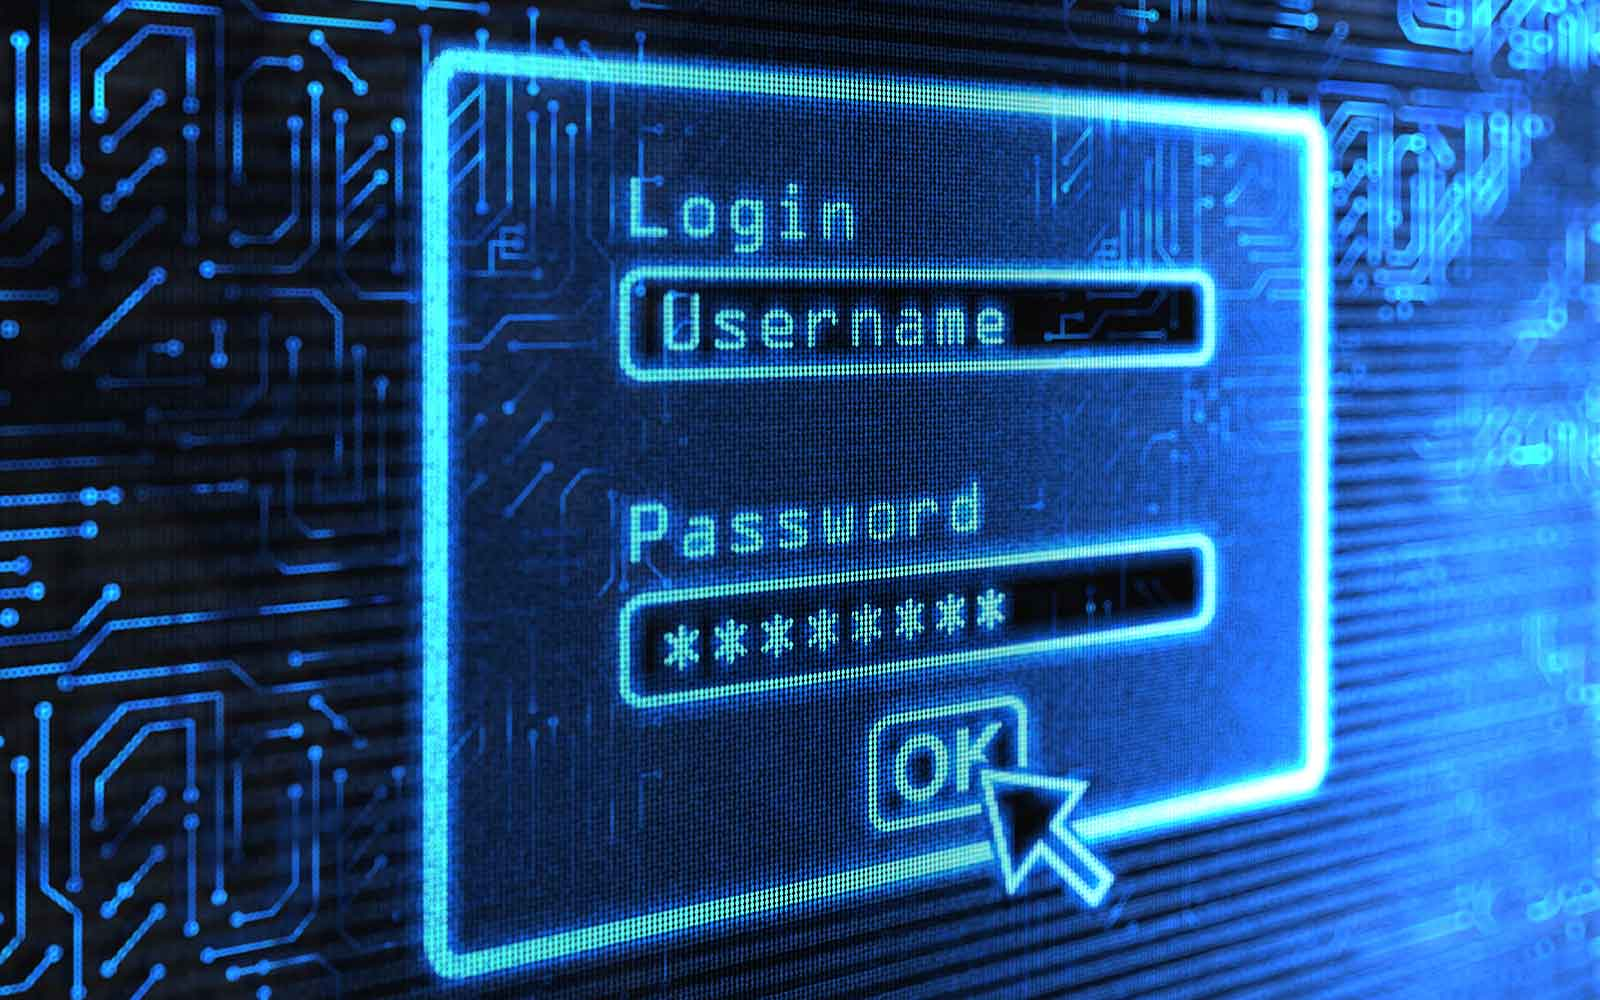 password security tips feature image of a login screen